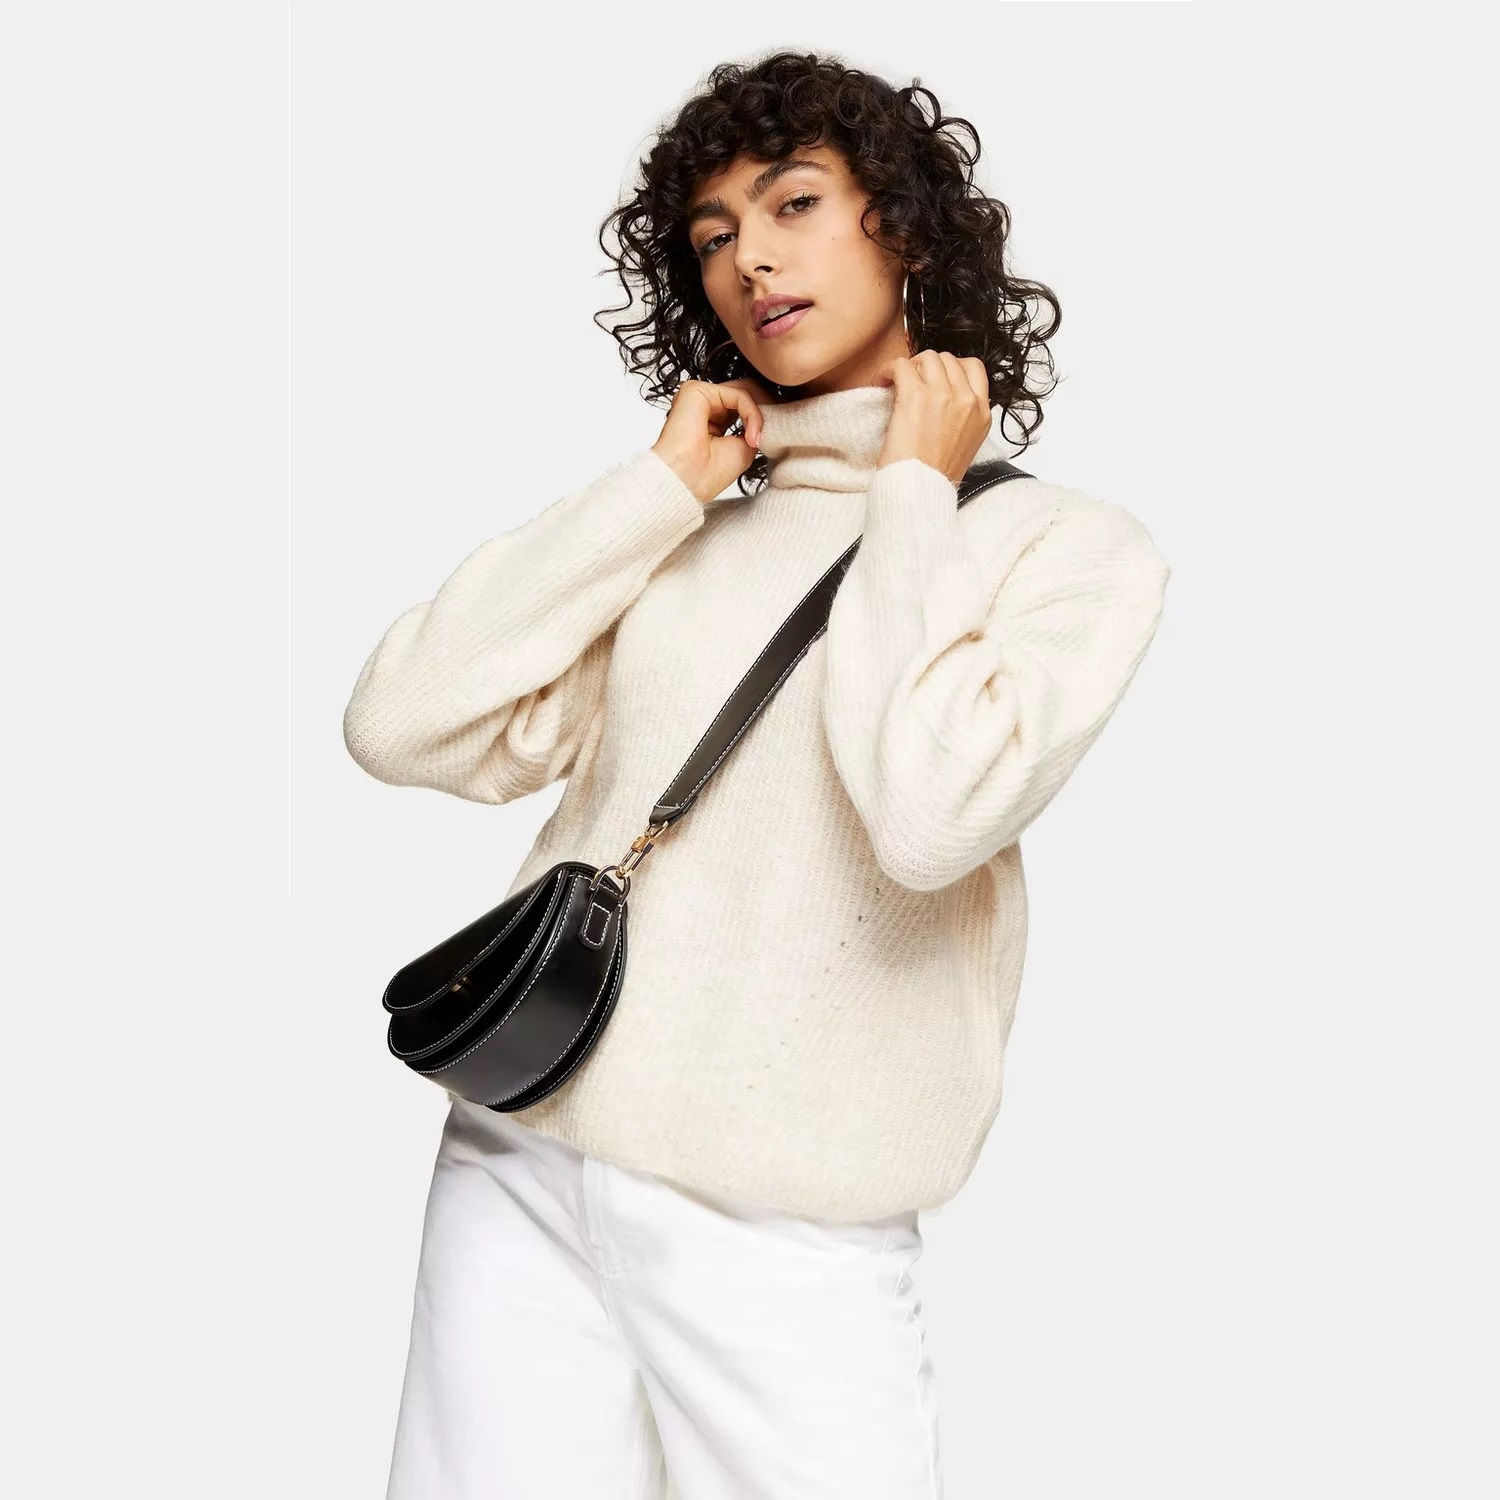 Topshop: Up to 50% OFF Winter Favourites Selected Styles